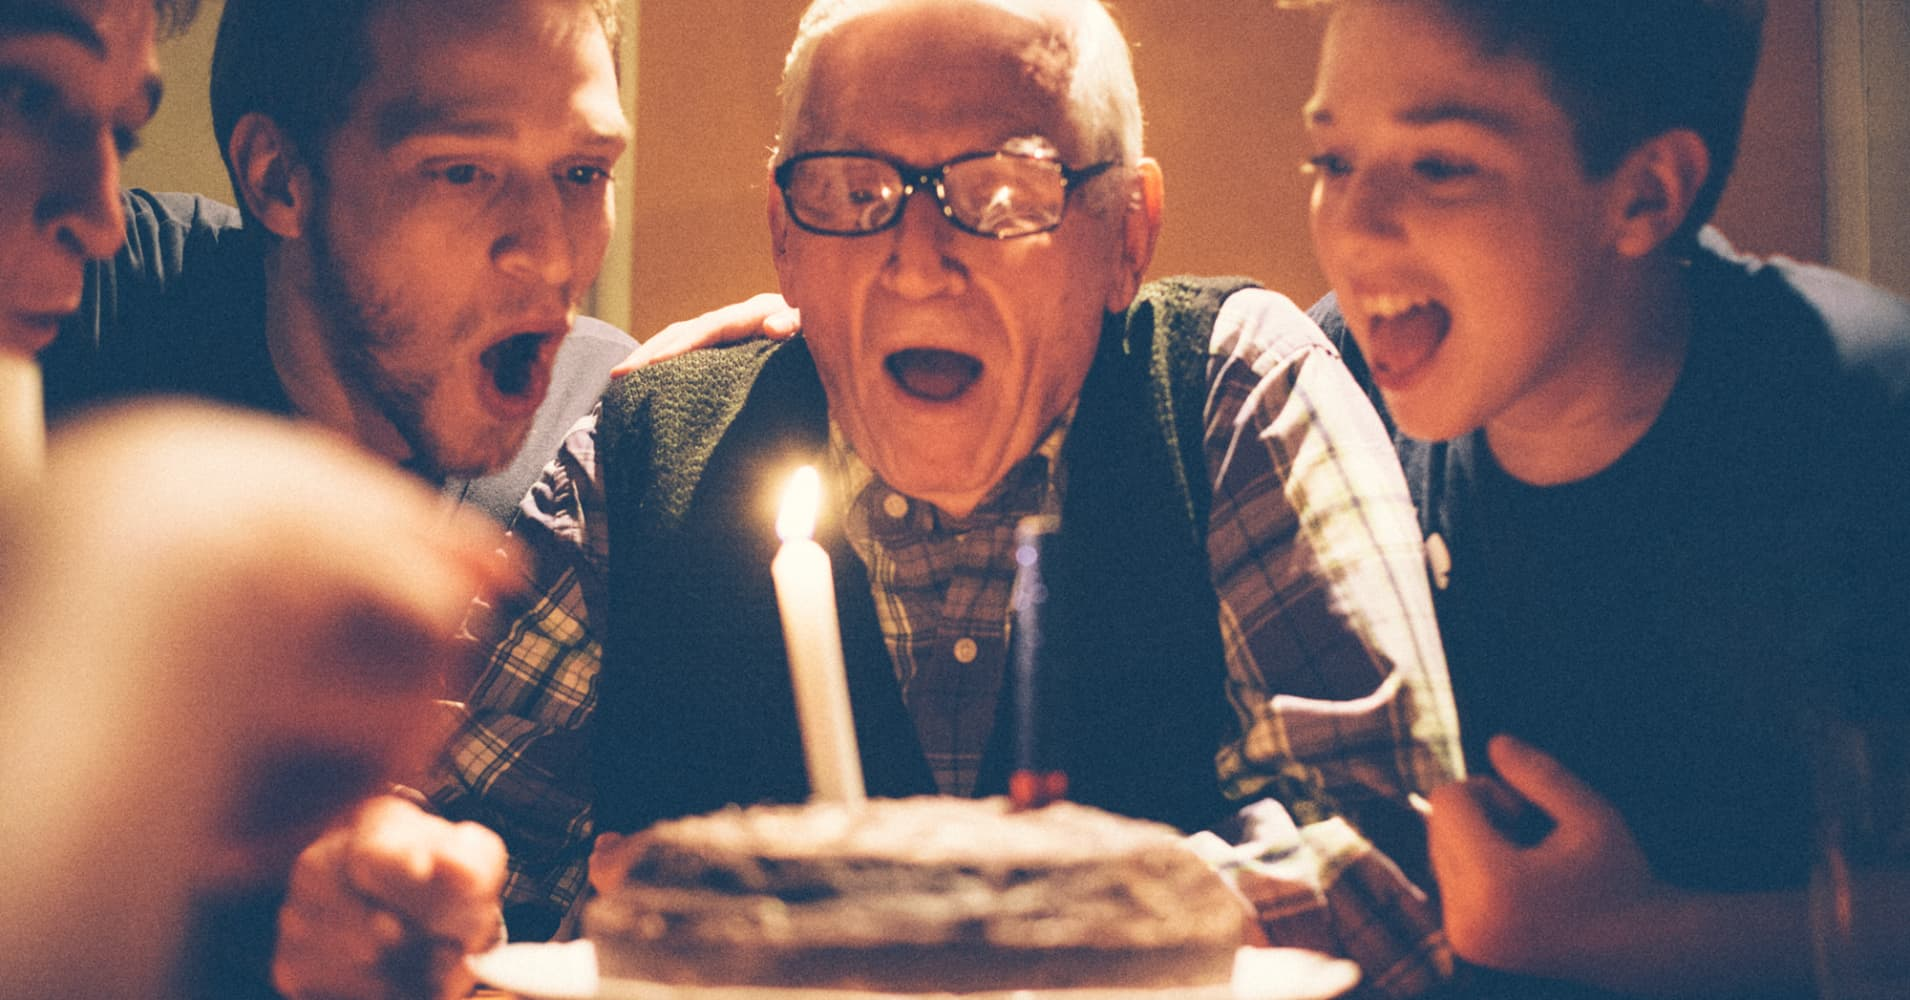 The good news: You'll probably live longer than expected. The bad news: Your financial plan may not account for those extra years. Here's how to adjust.